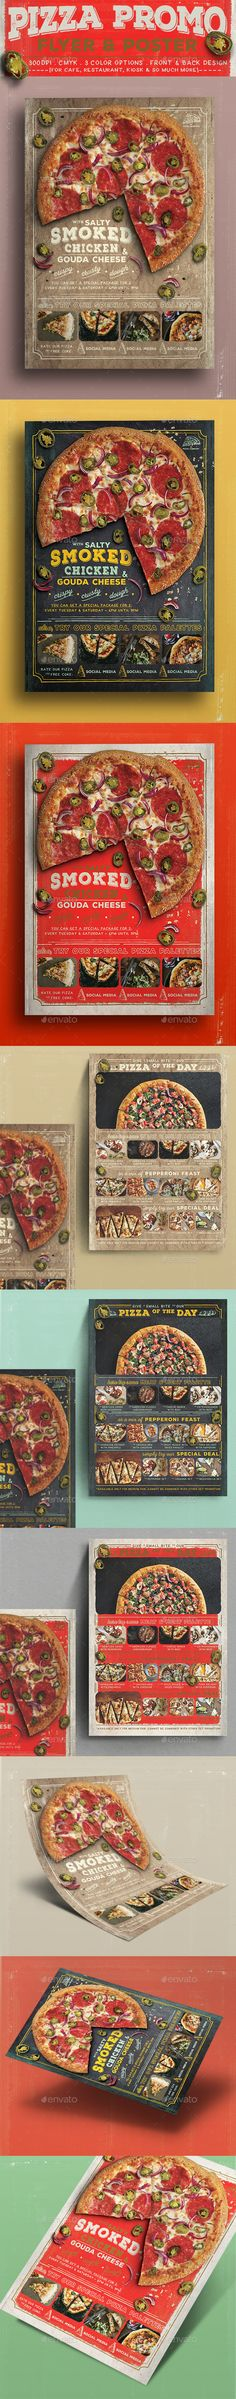 Pizza Restaurant Menu Flyer A  Pizza Restaurant Menu And Pizzas